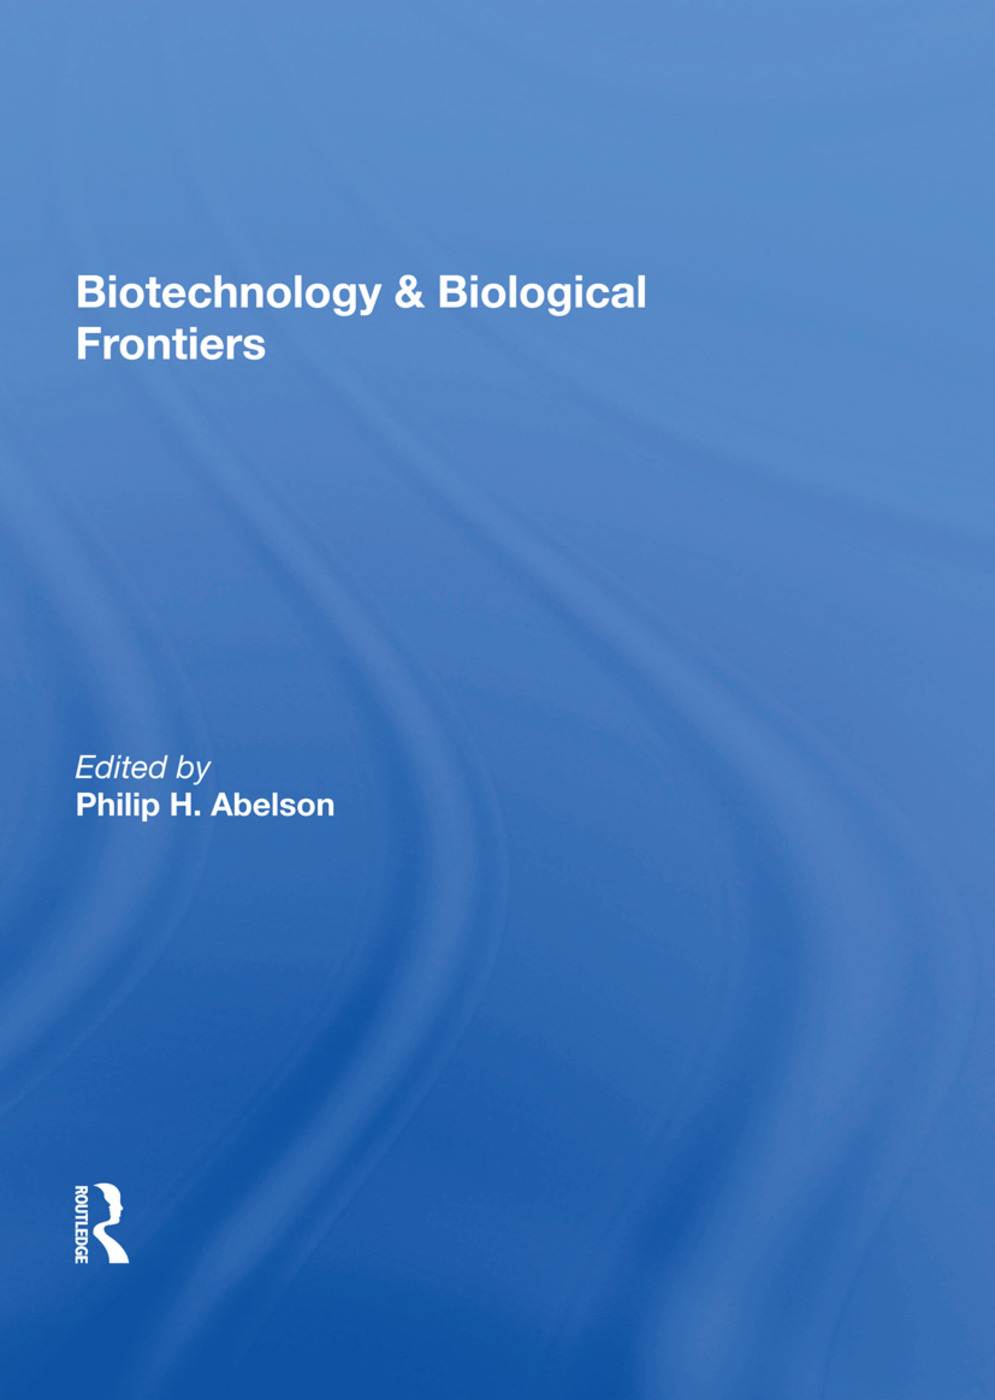 Biotechnology & Biological Frontiers